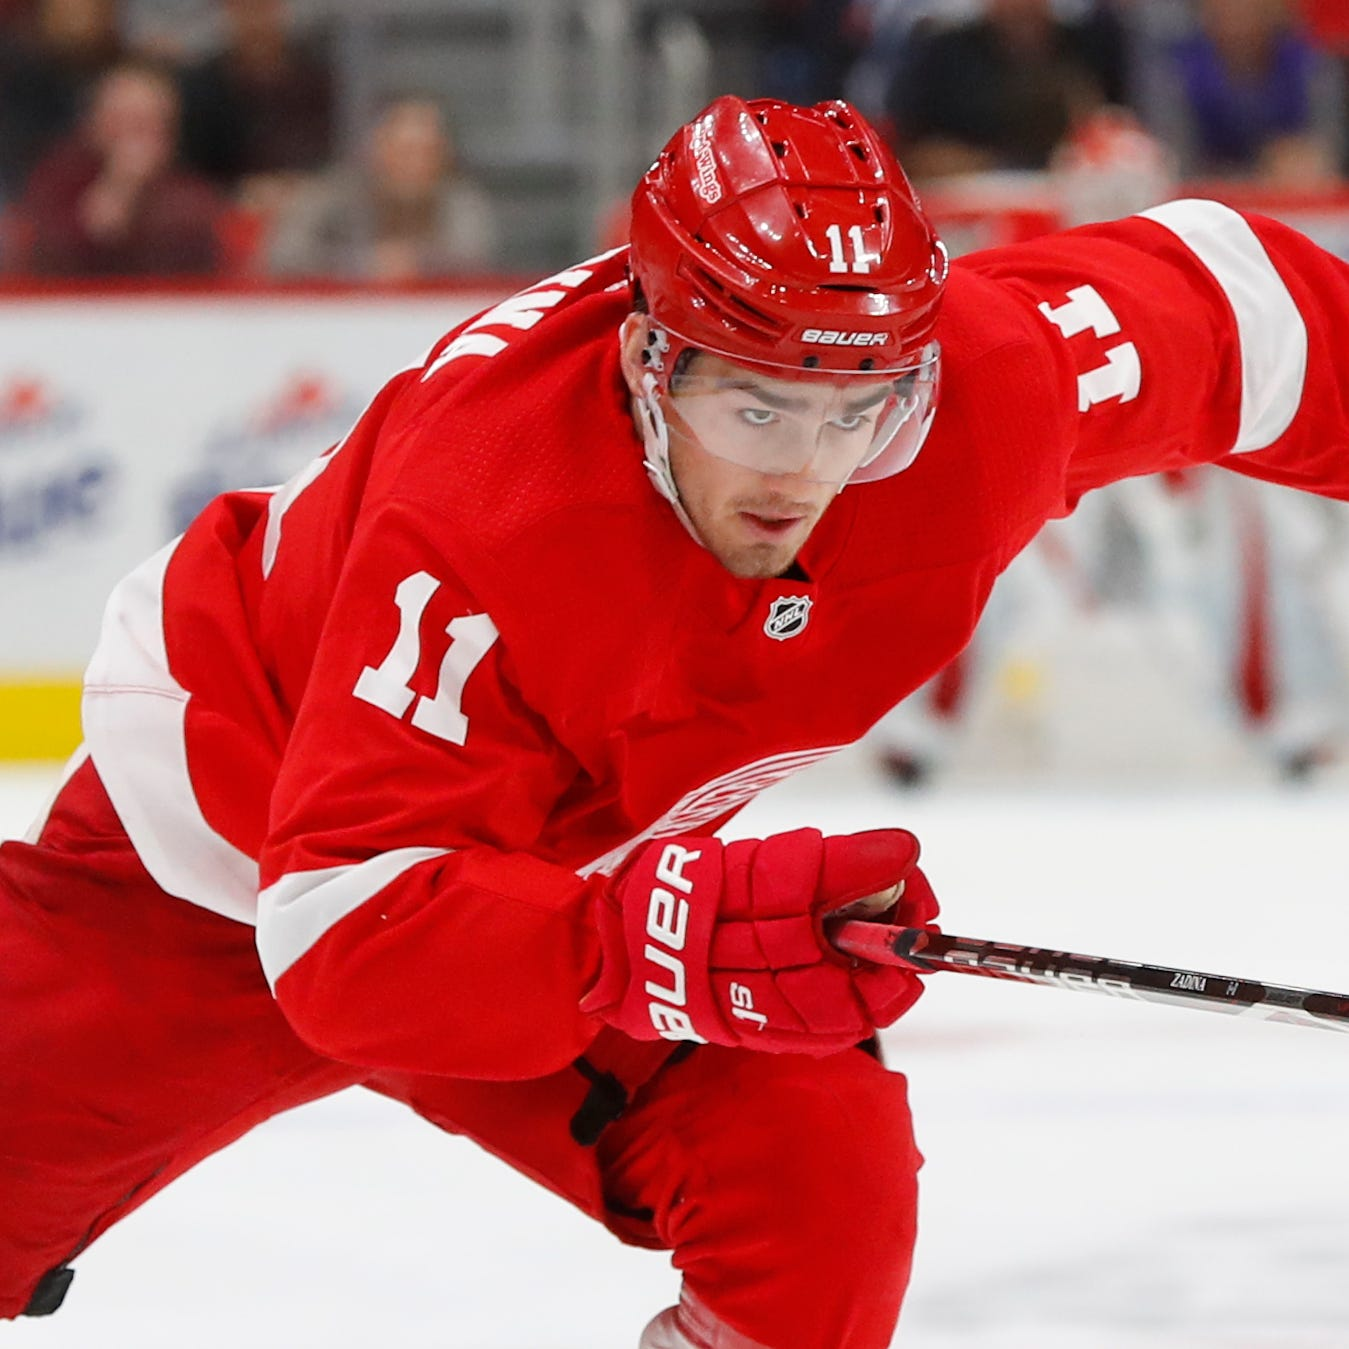 Pressure not a concern for Red Wings' Zadina as he makes NHL debut